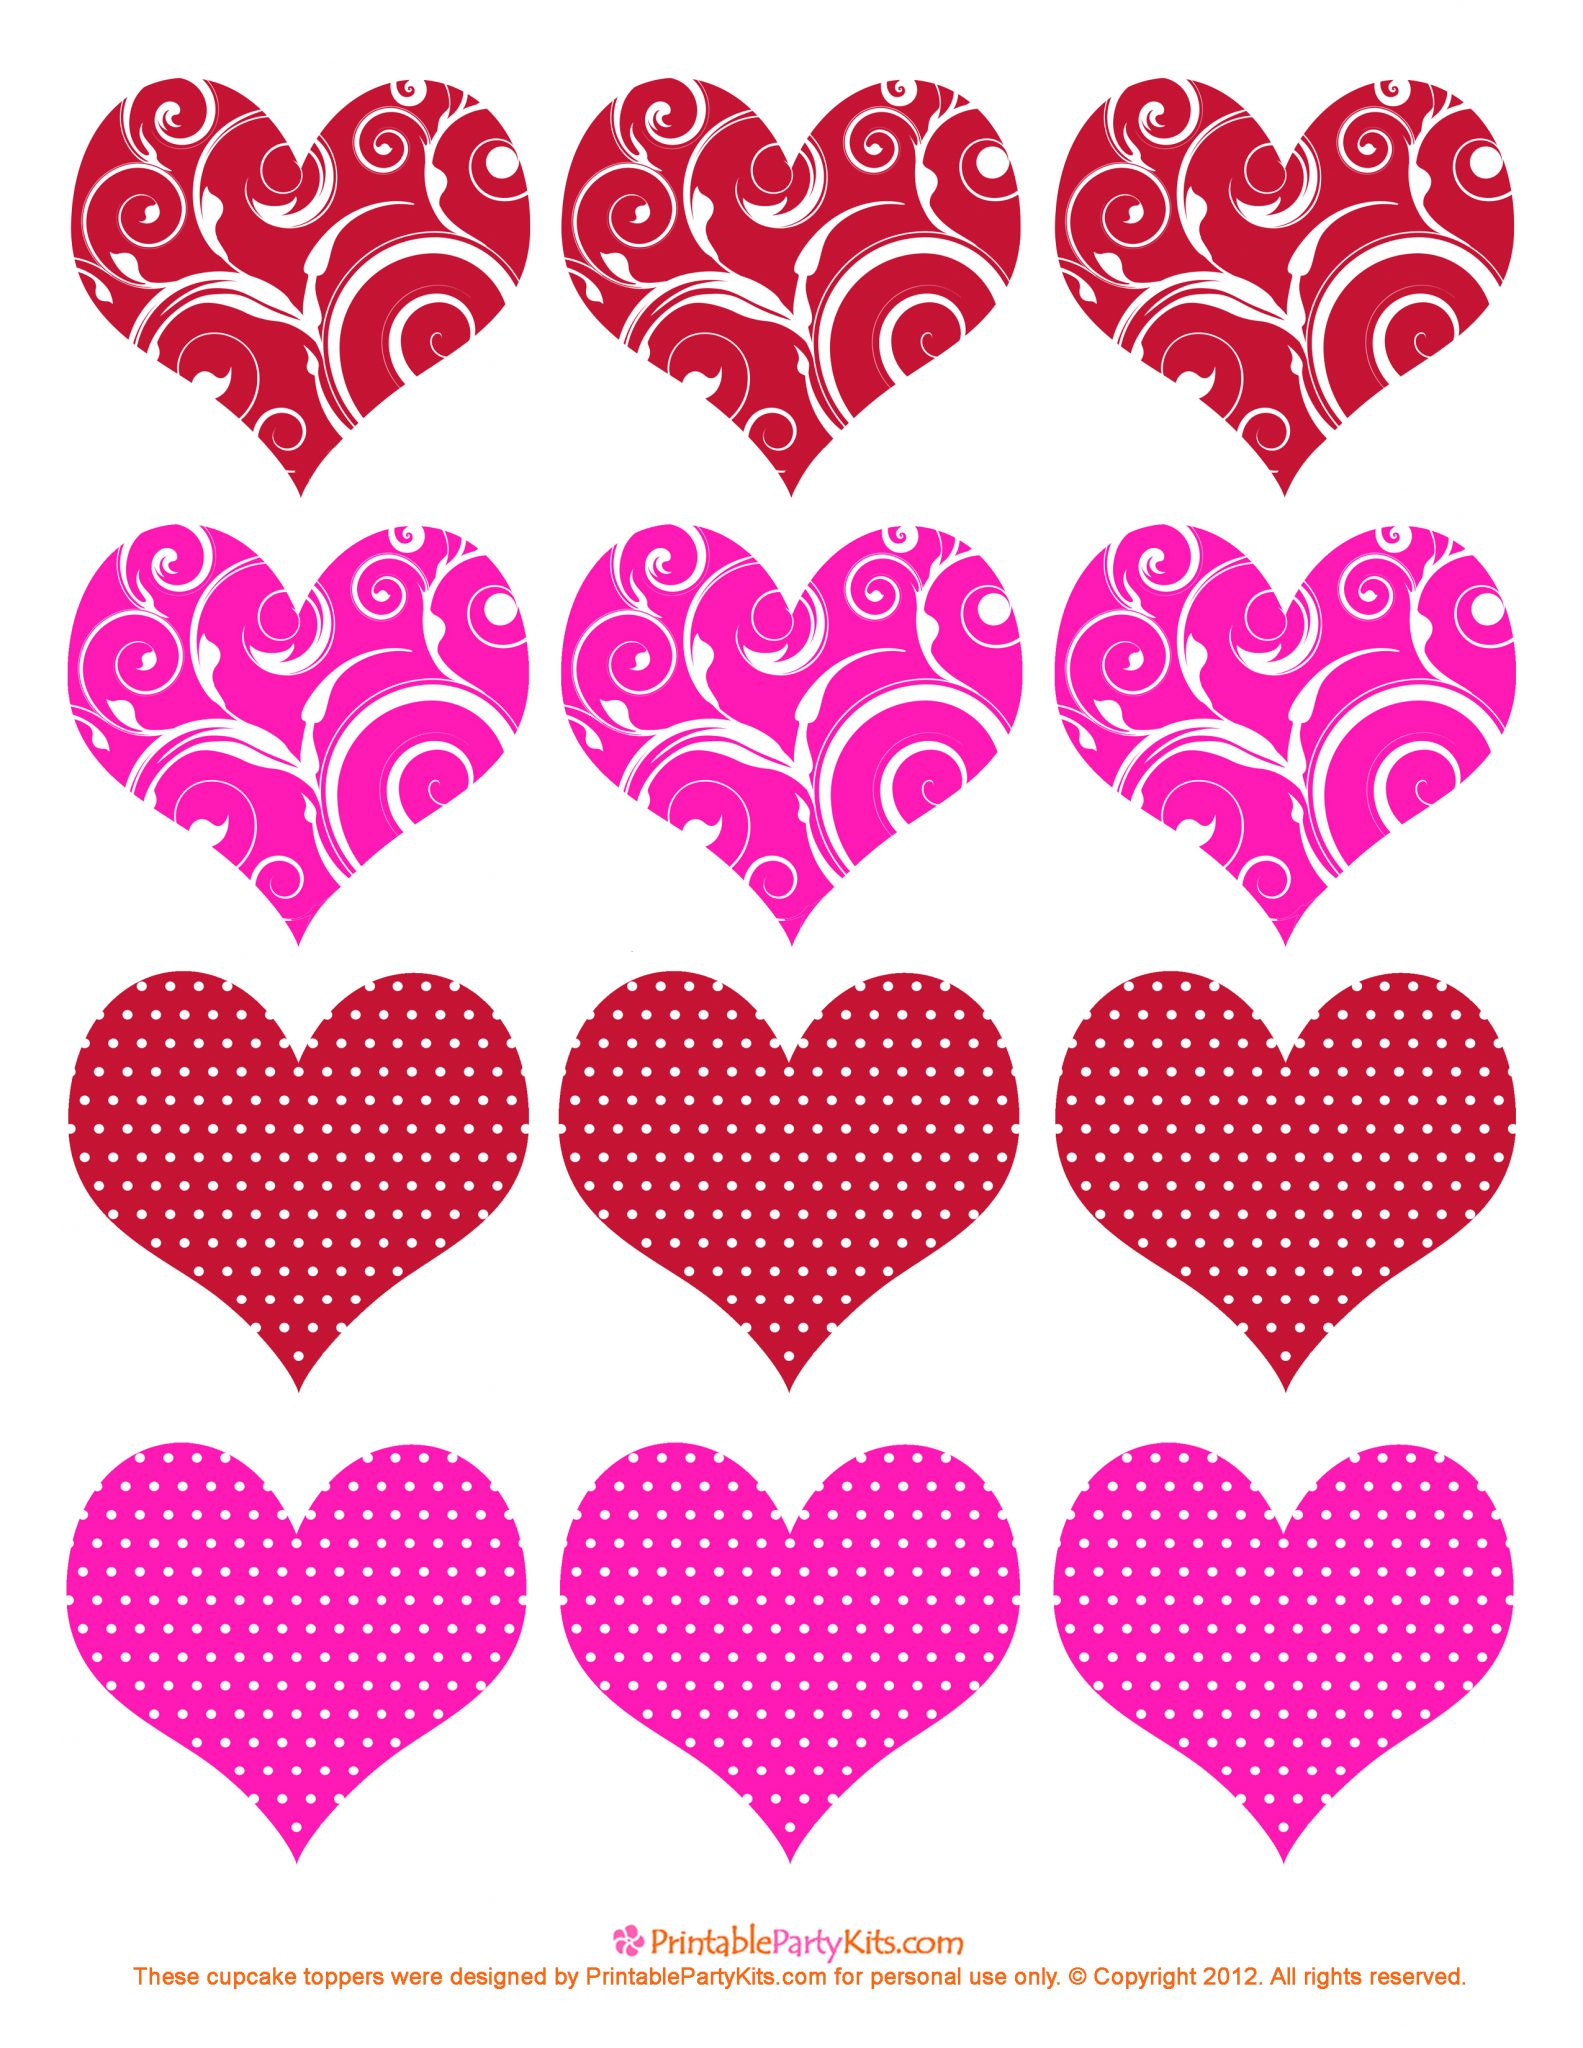 download the valentine cupcake picks toppers template here